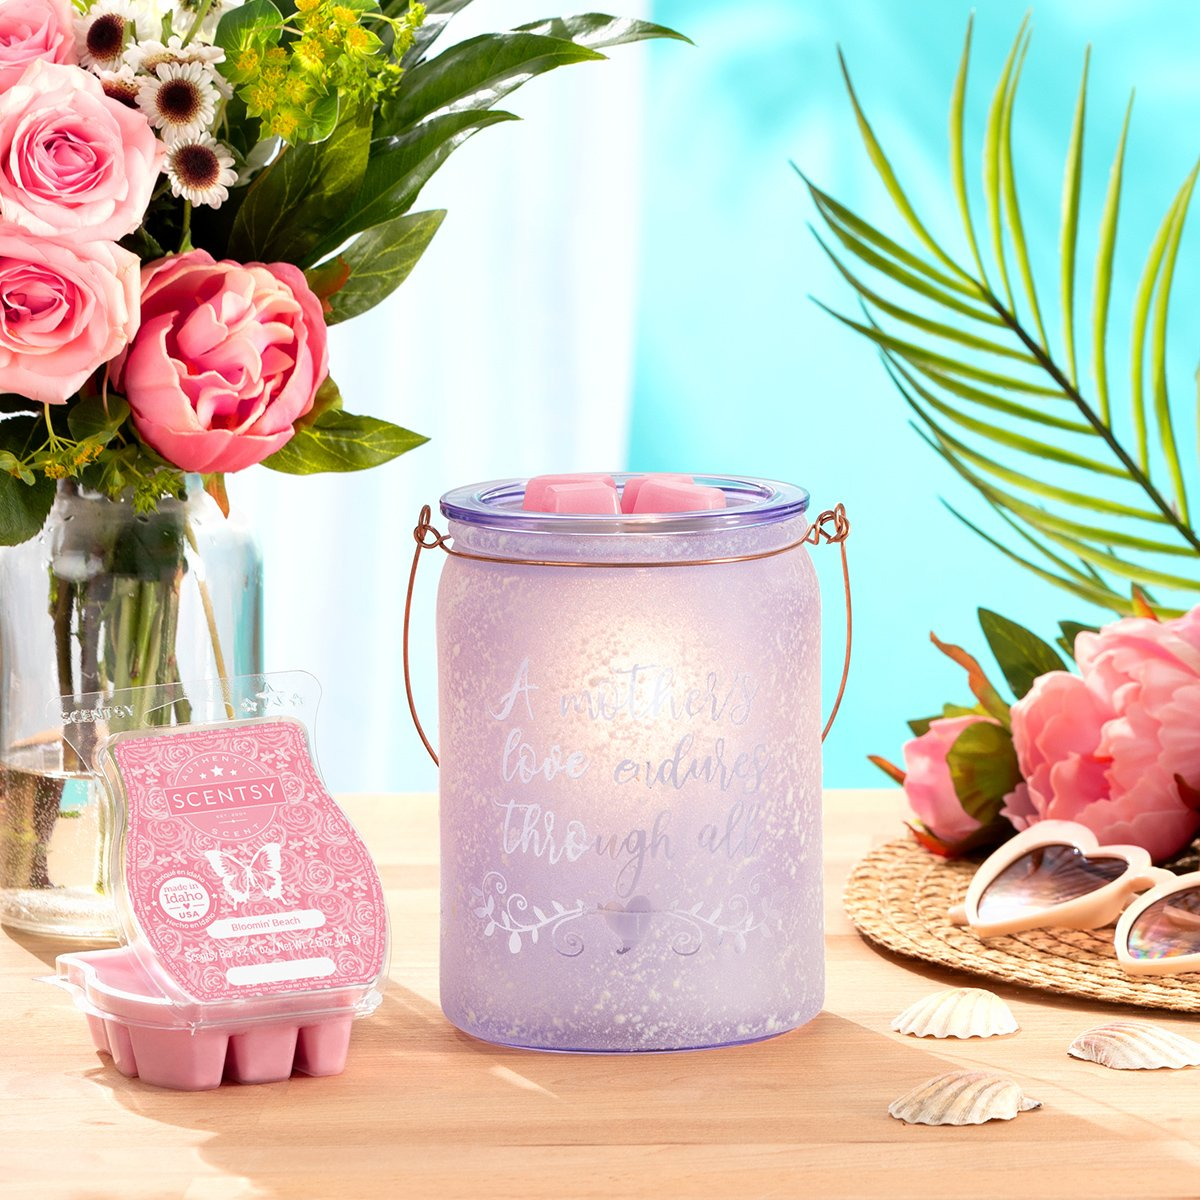 Scentsy Mothers Day Candle Burner